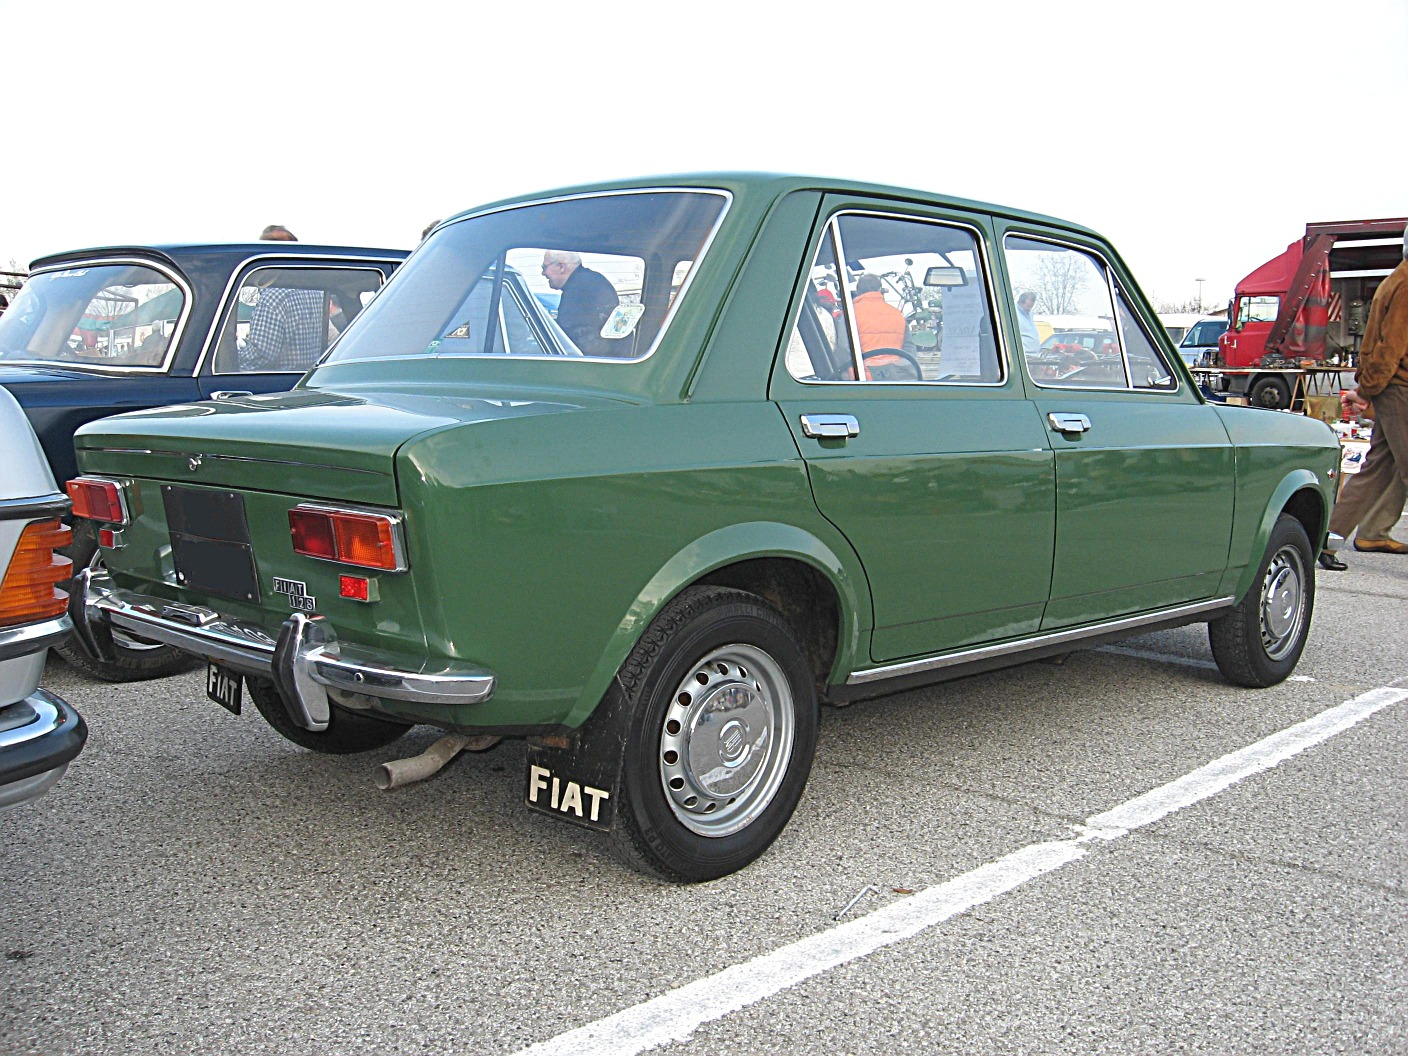 file fiat 128 sedan 4dr 1969 rear view jpg wikimedia commons. Black Bedroom Furniture Sets. Home Design Ideas